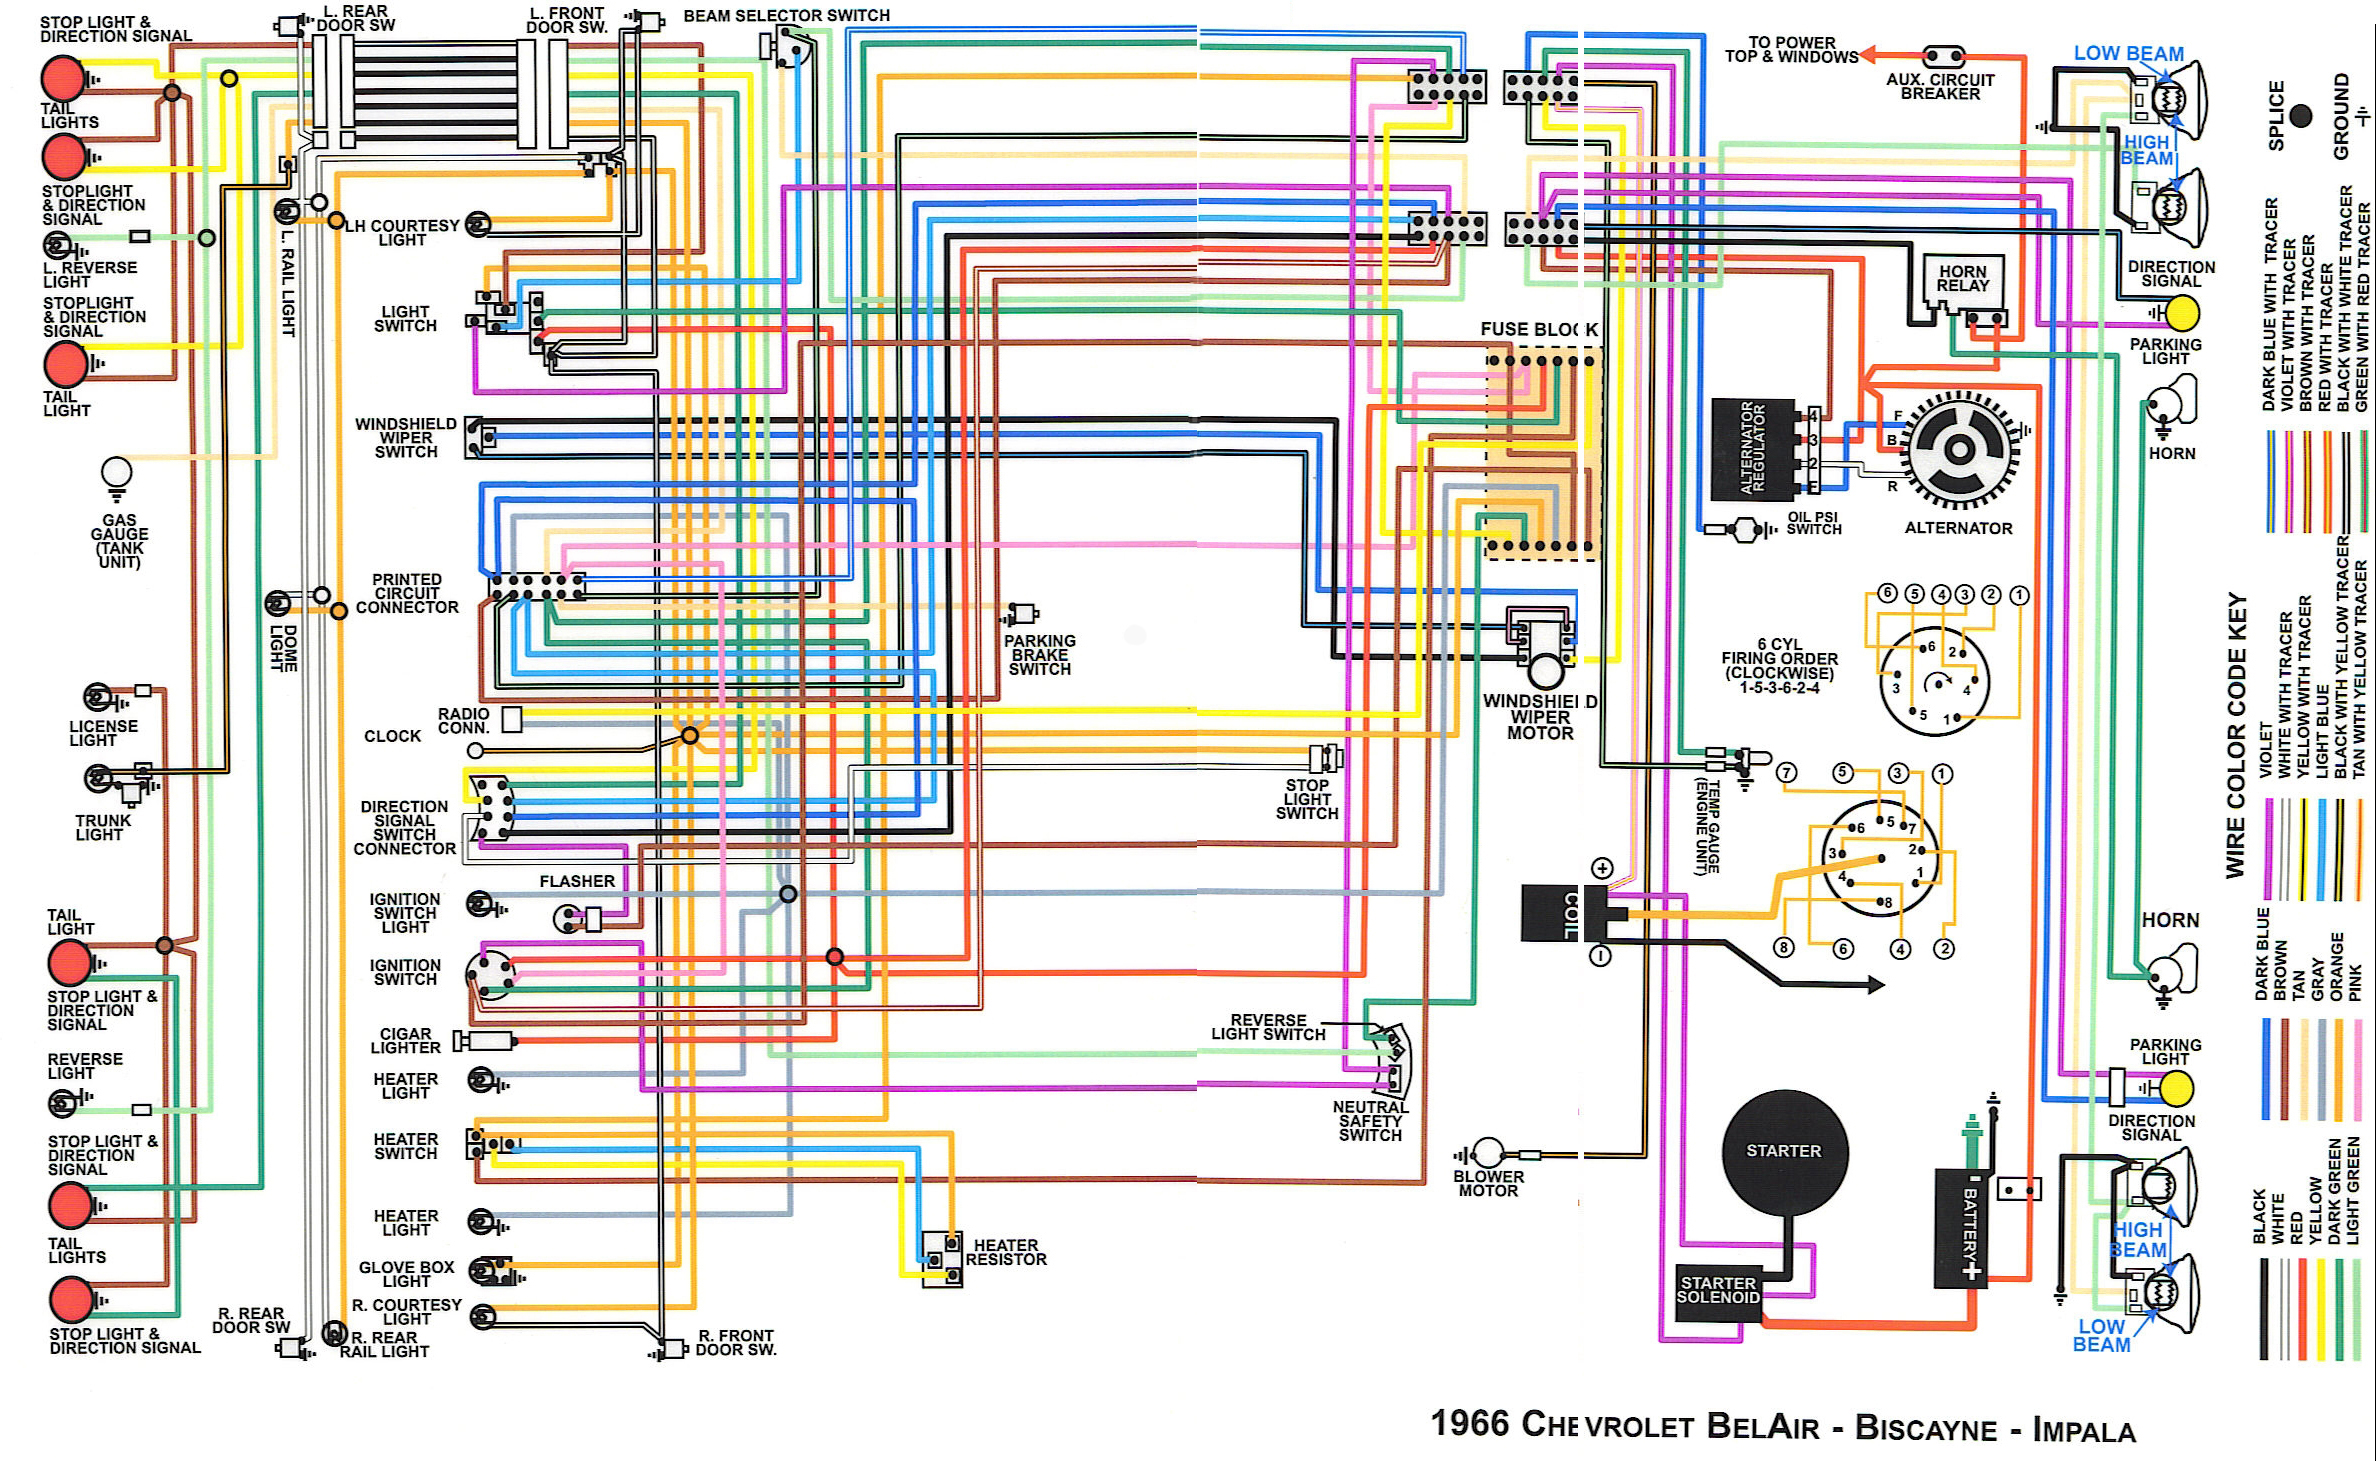 wd 1971 corvette wiring diagram 1981 corvette stereo wiring diagram 2002 corvette wiring diagrams at alyssarenee.co